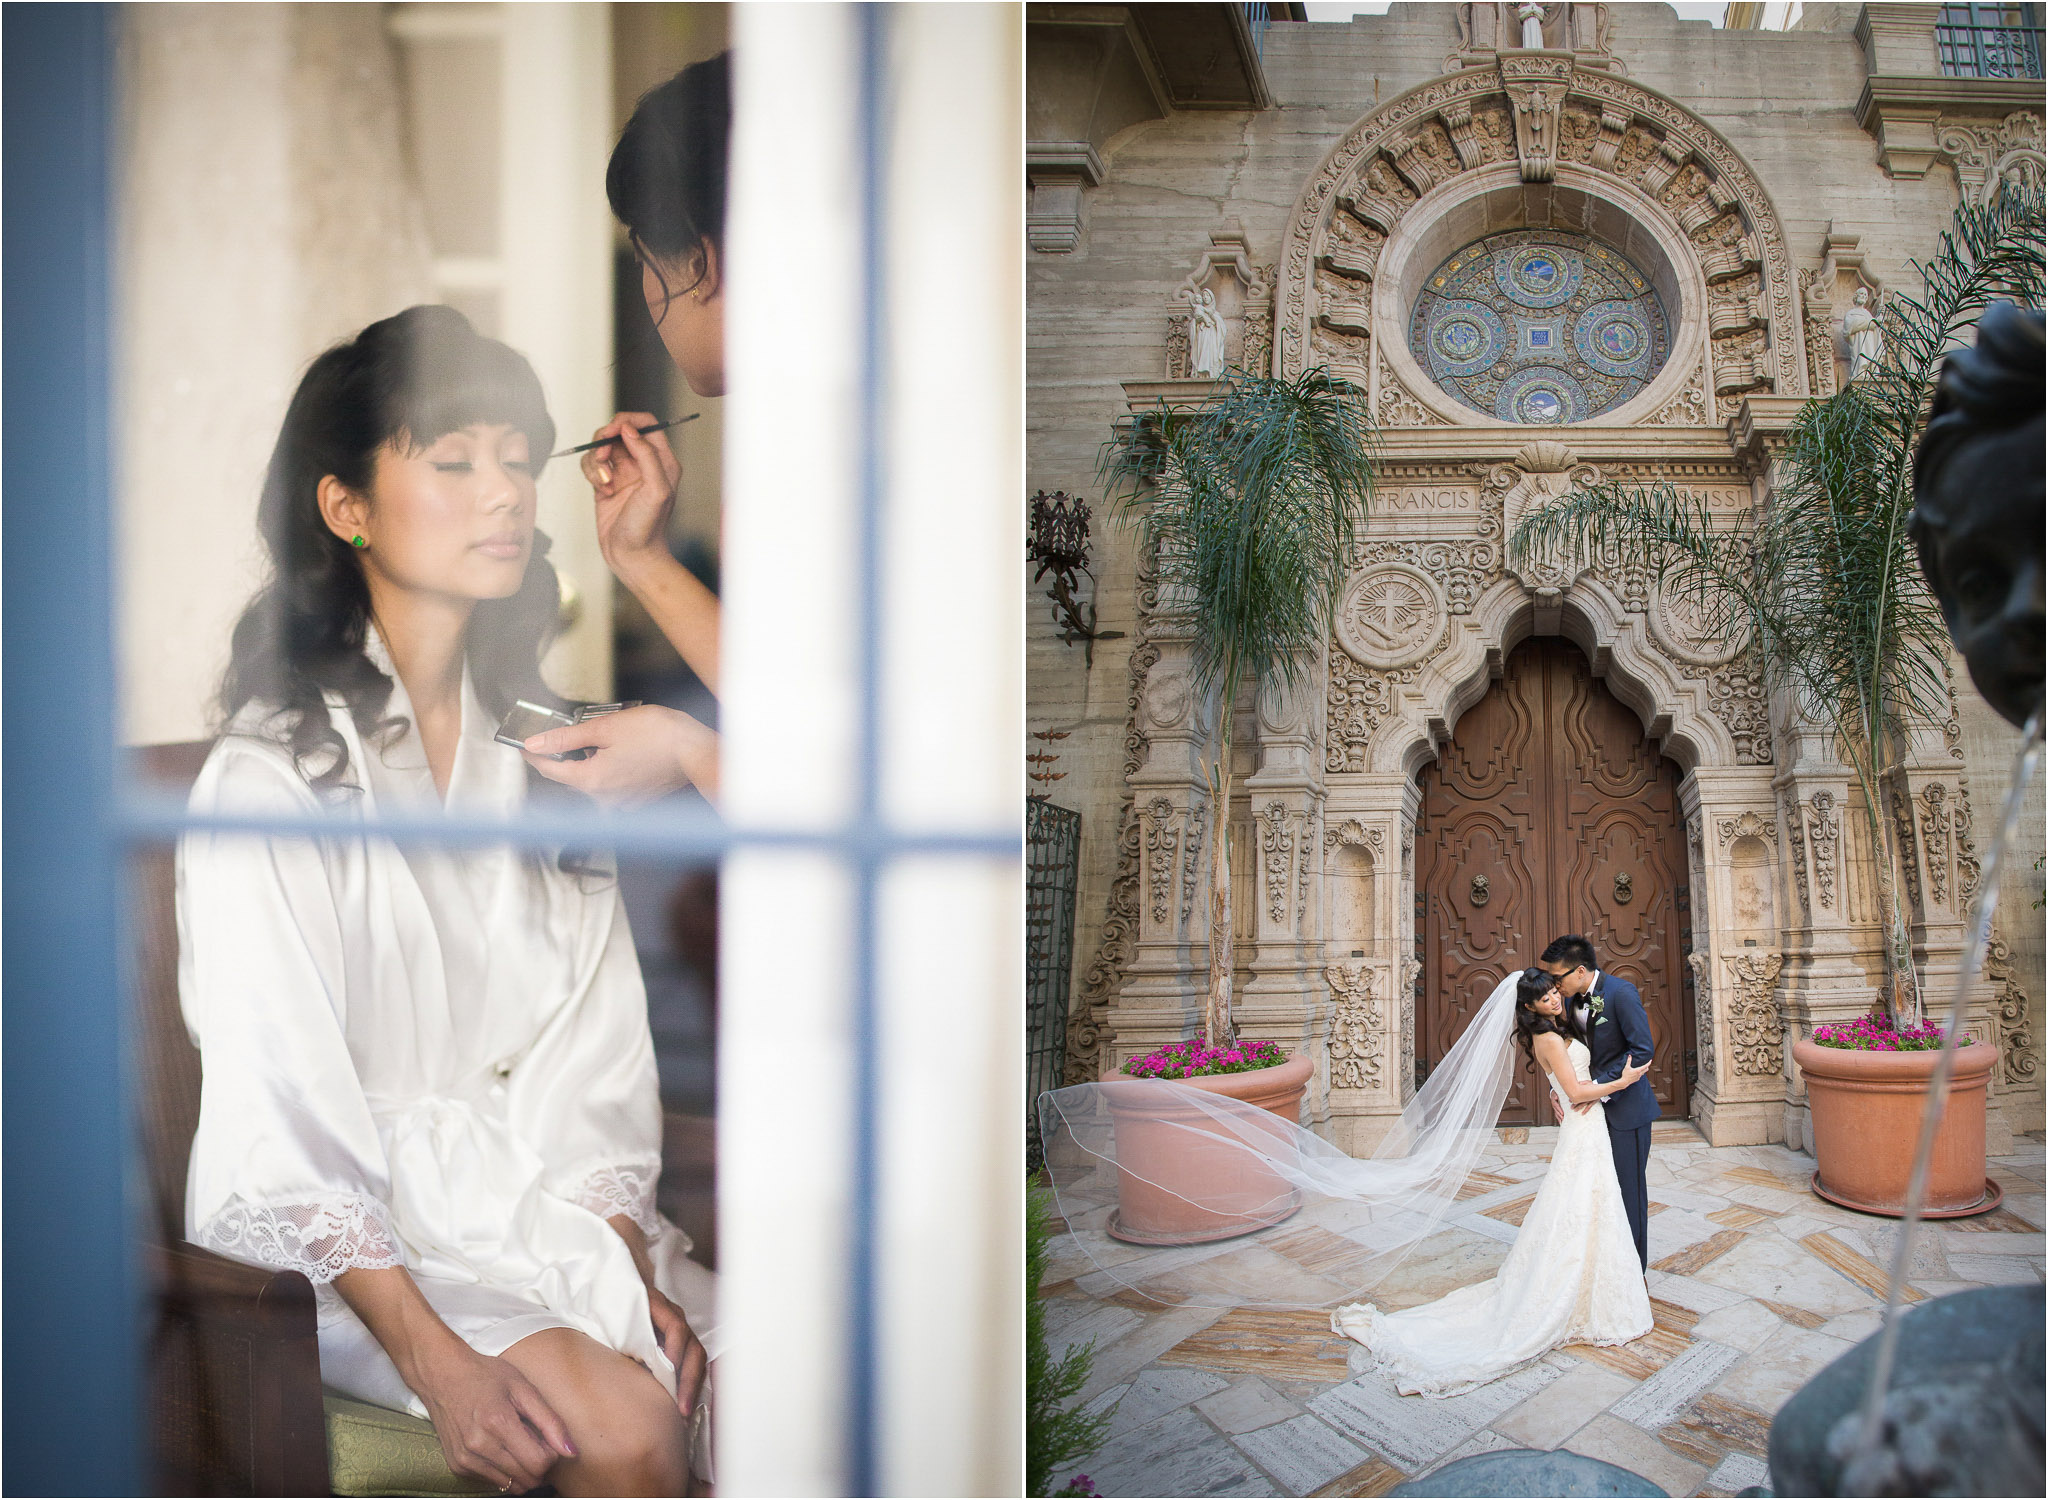 Mission Inn Riverside Wedding | Los Angeles Wedding Photographer St Francis Of Assisi Chapel Mission